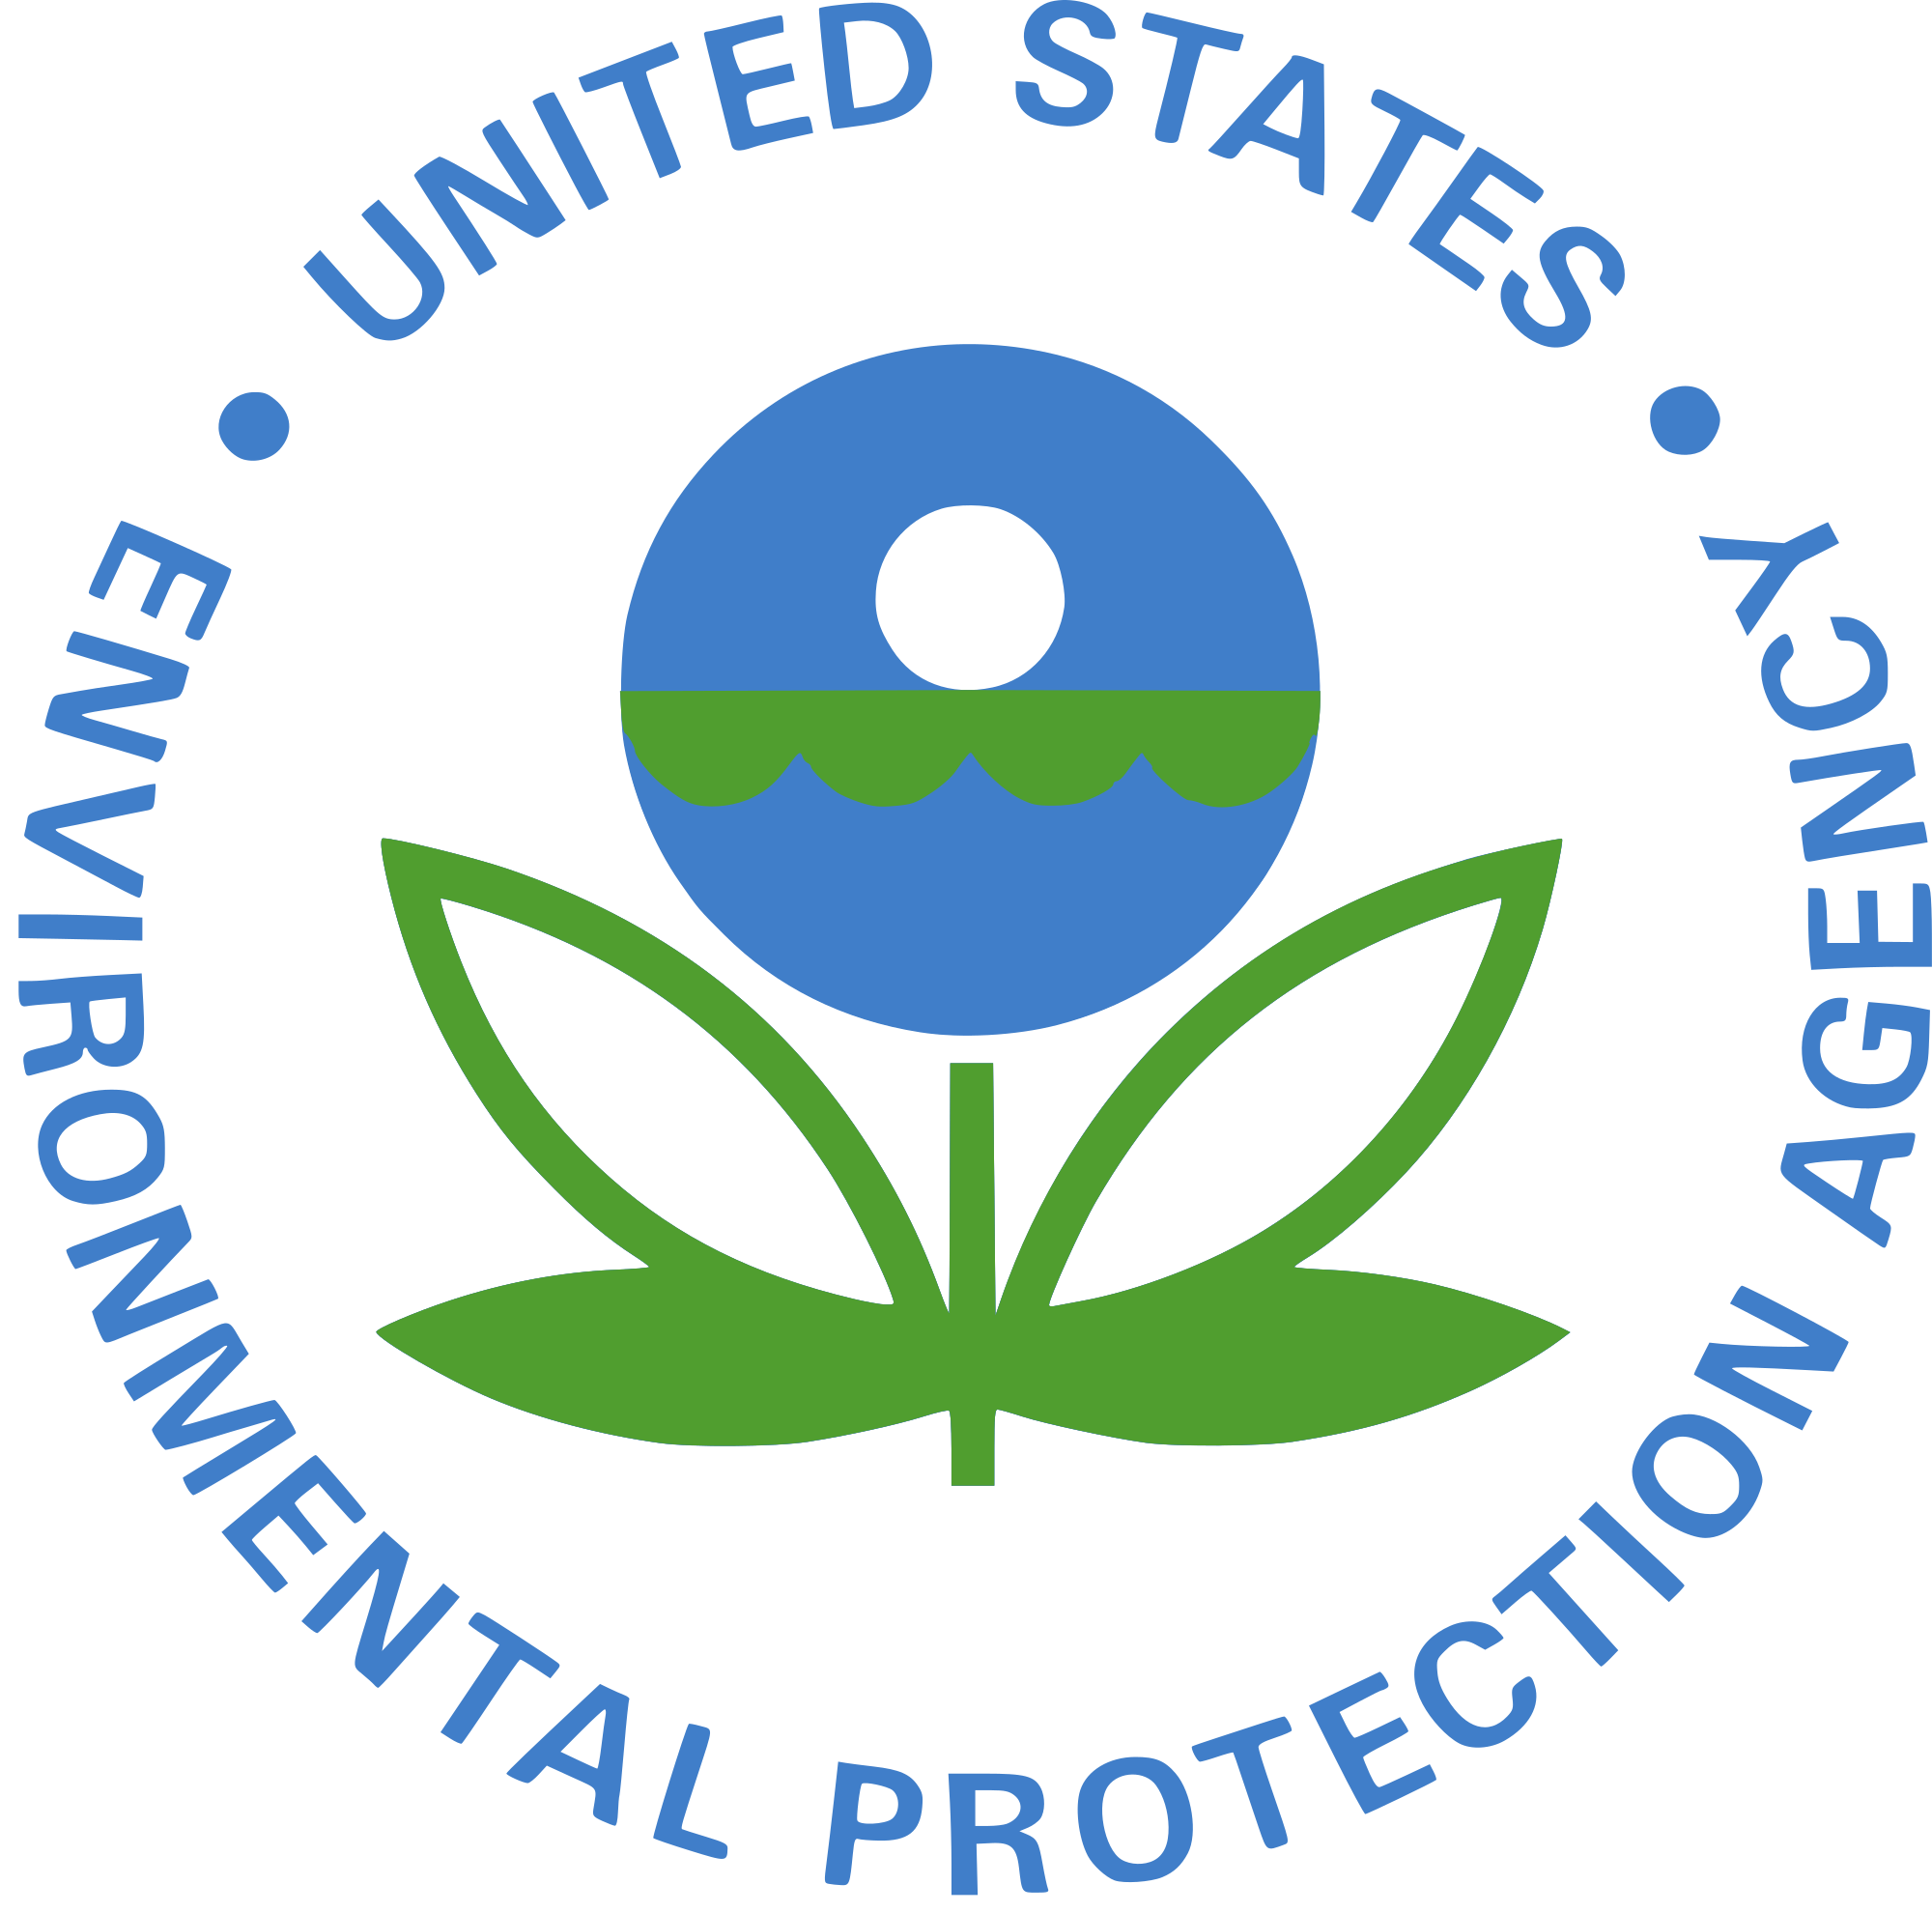 EPA Issues Interim Guidance Regarding Cleanups During COVID-19 Crisis